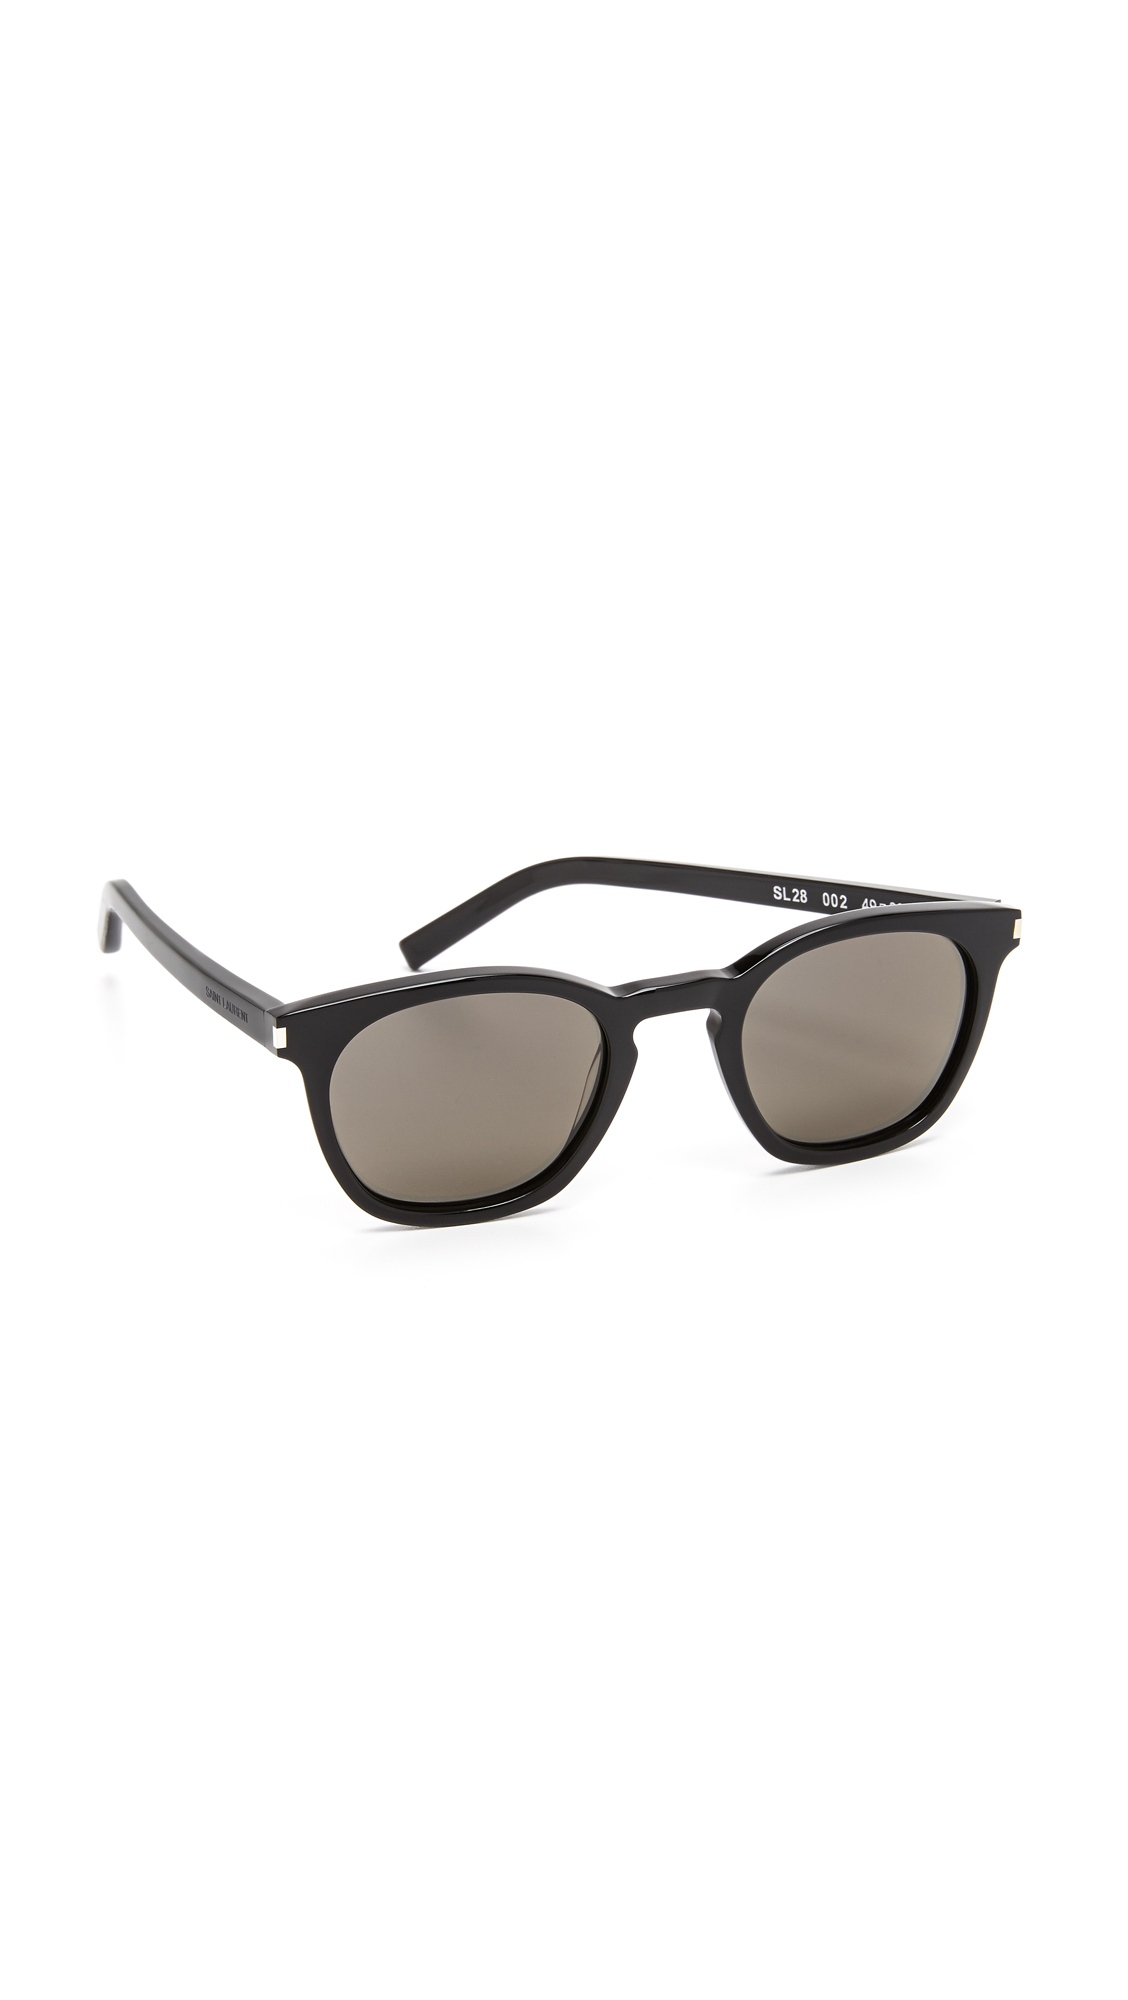 a694f4fa2256 Saint Laurent SL 28 Mineral Glass Sunglasses | SHOPBOP